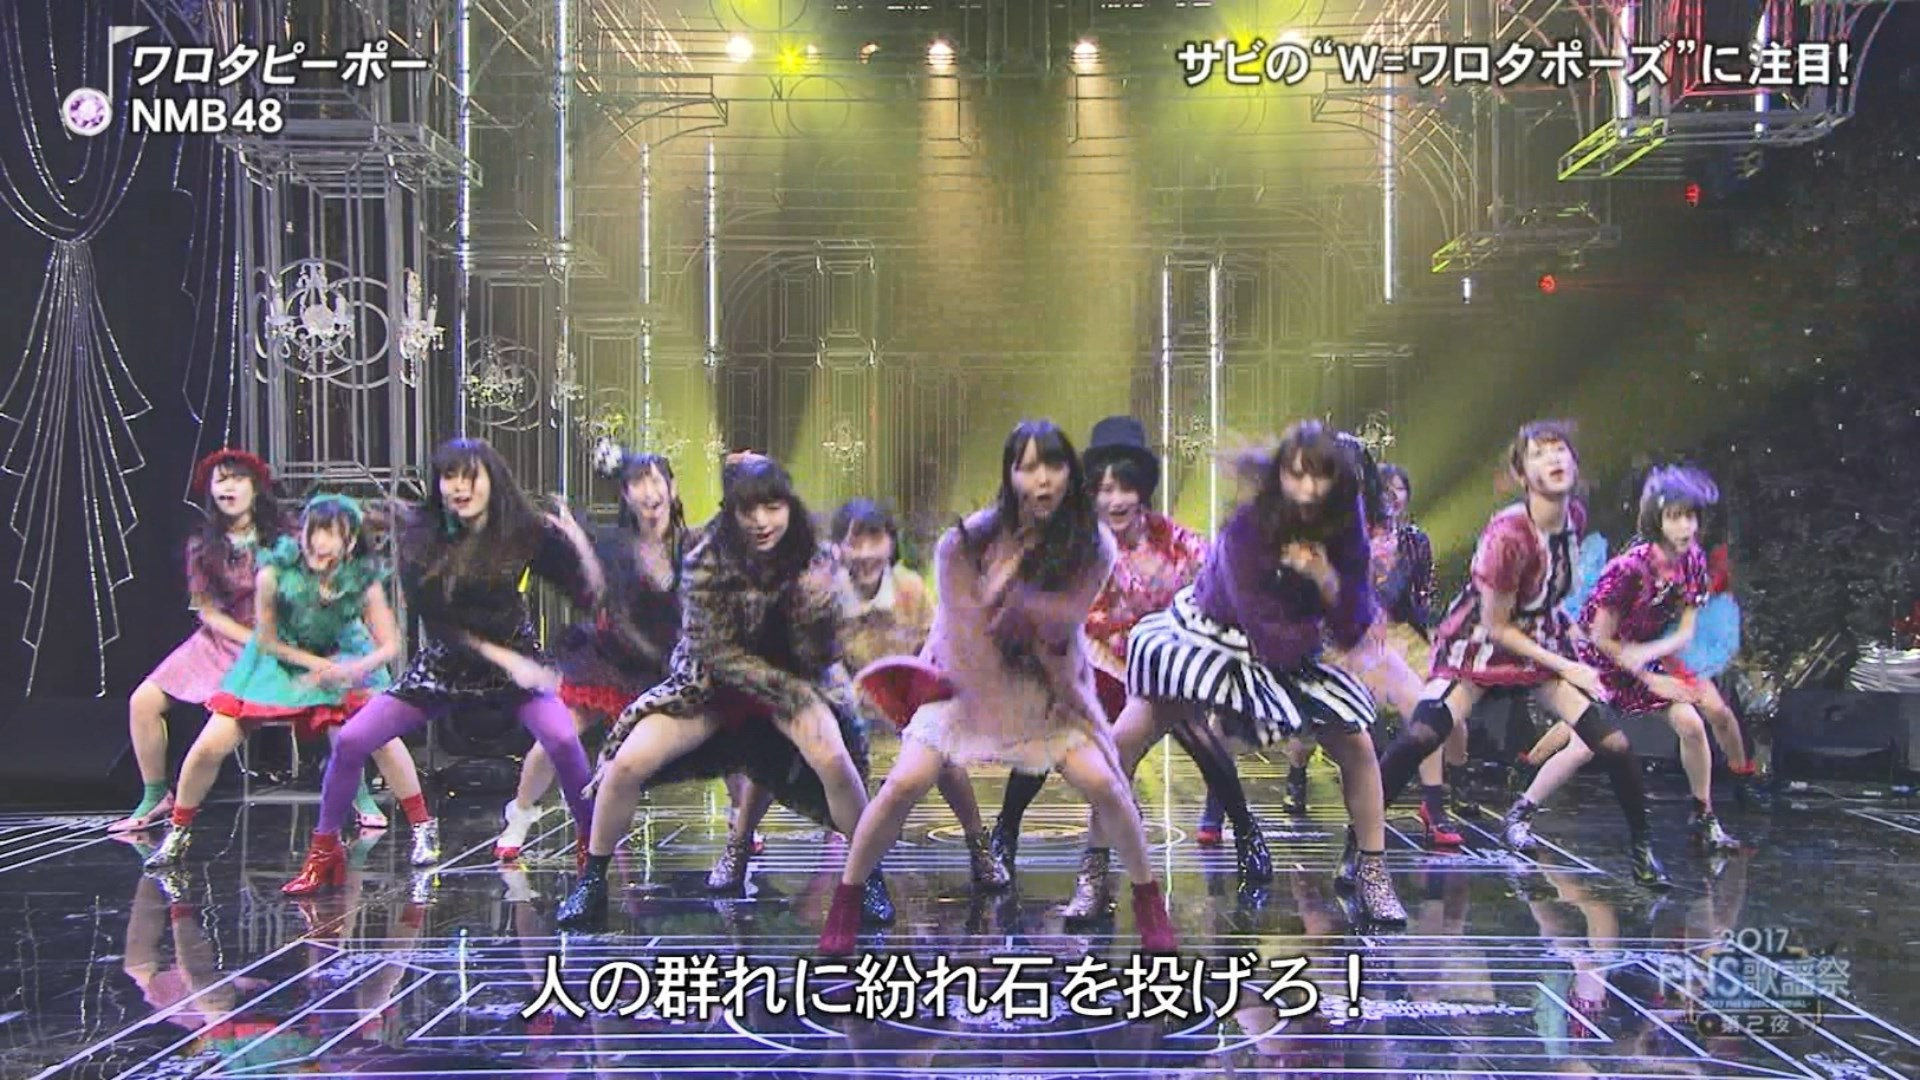 2017FNS歌謡祭第2夜・NMB48ワロタピーポーキャプ-069